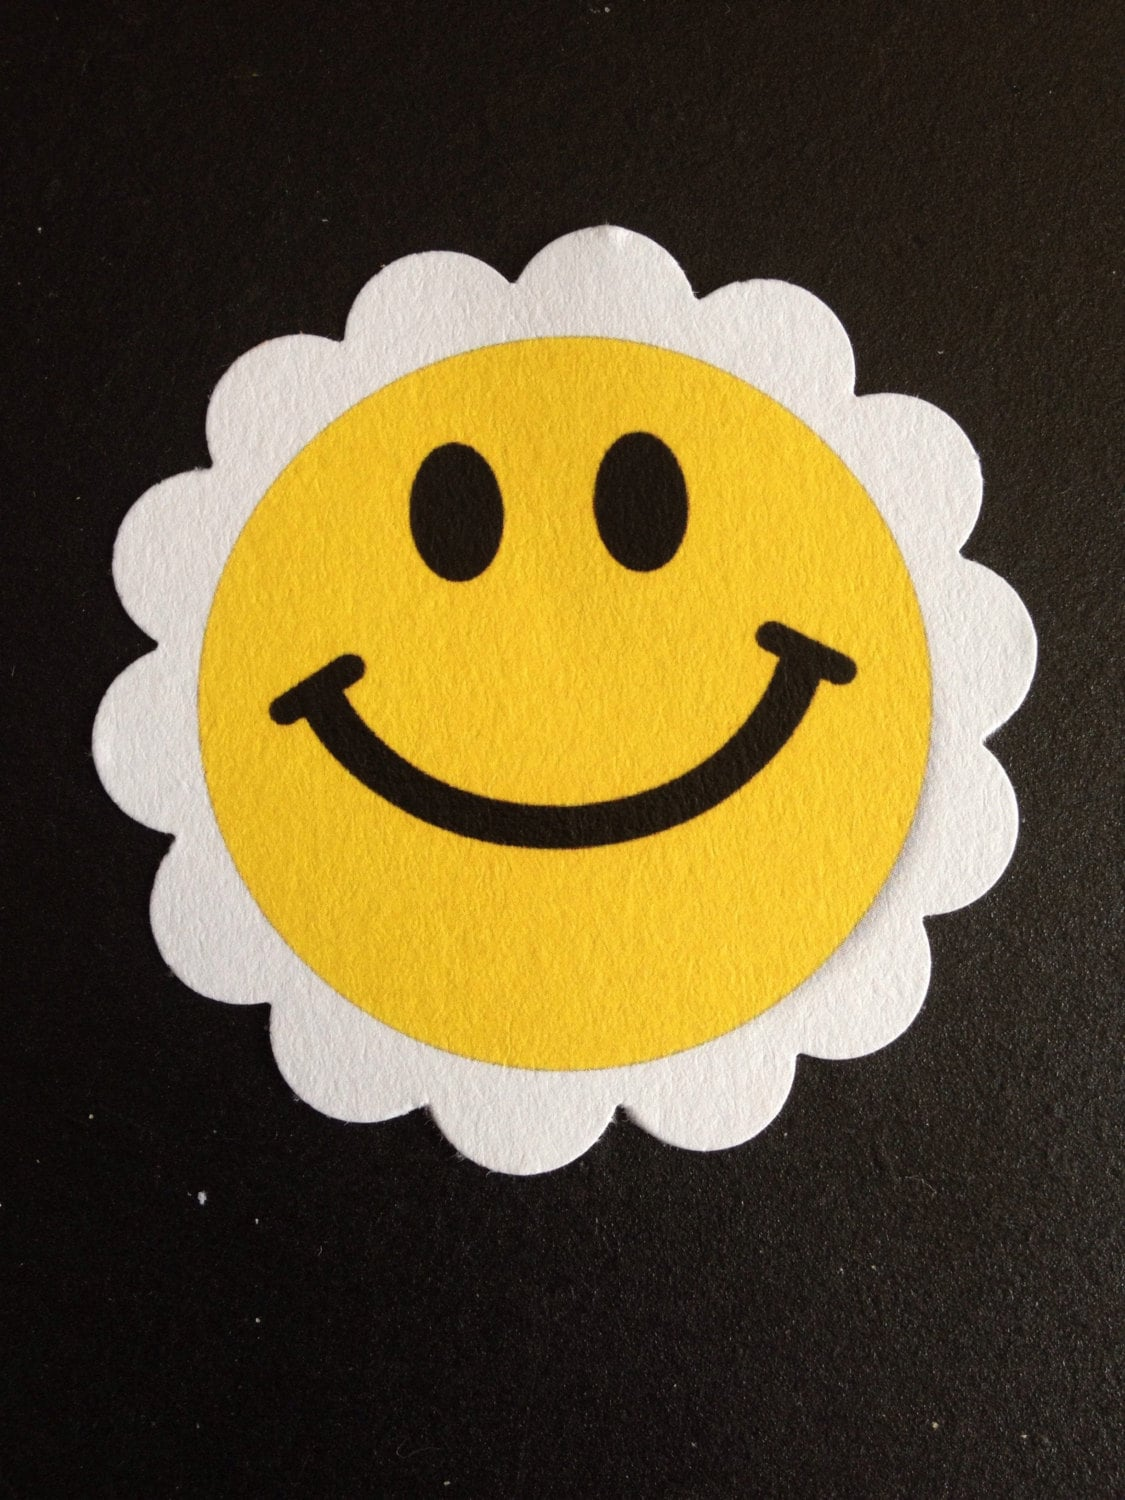 Happy Face Smiley Face Emoji Treat Tags Cupcake Toppers From Blessedtrish On Etsy Studio